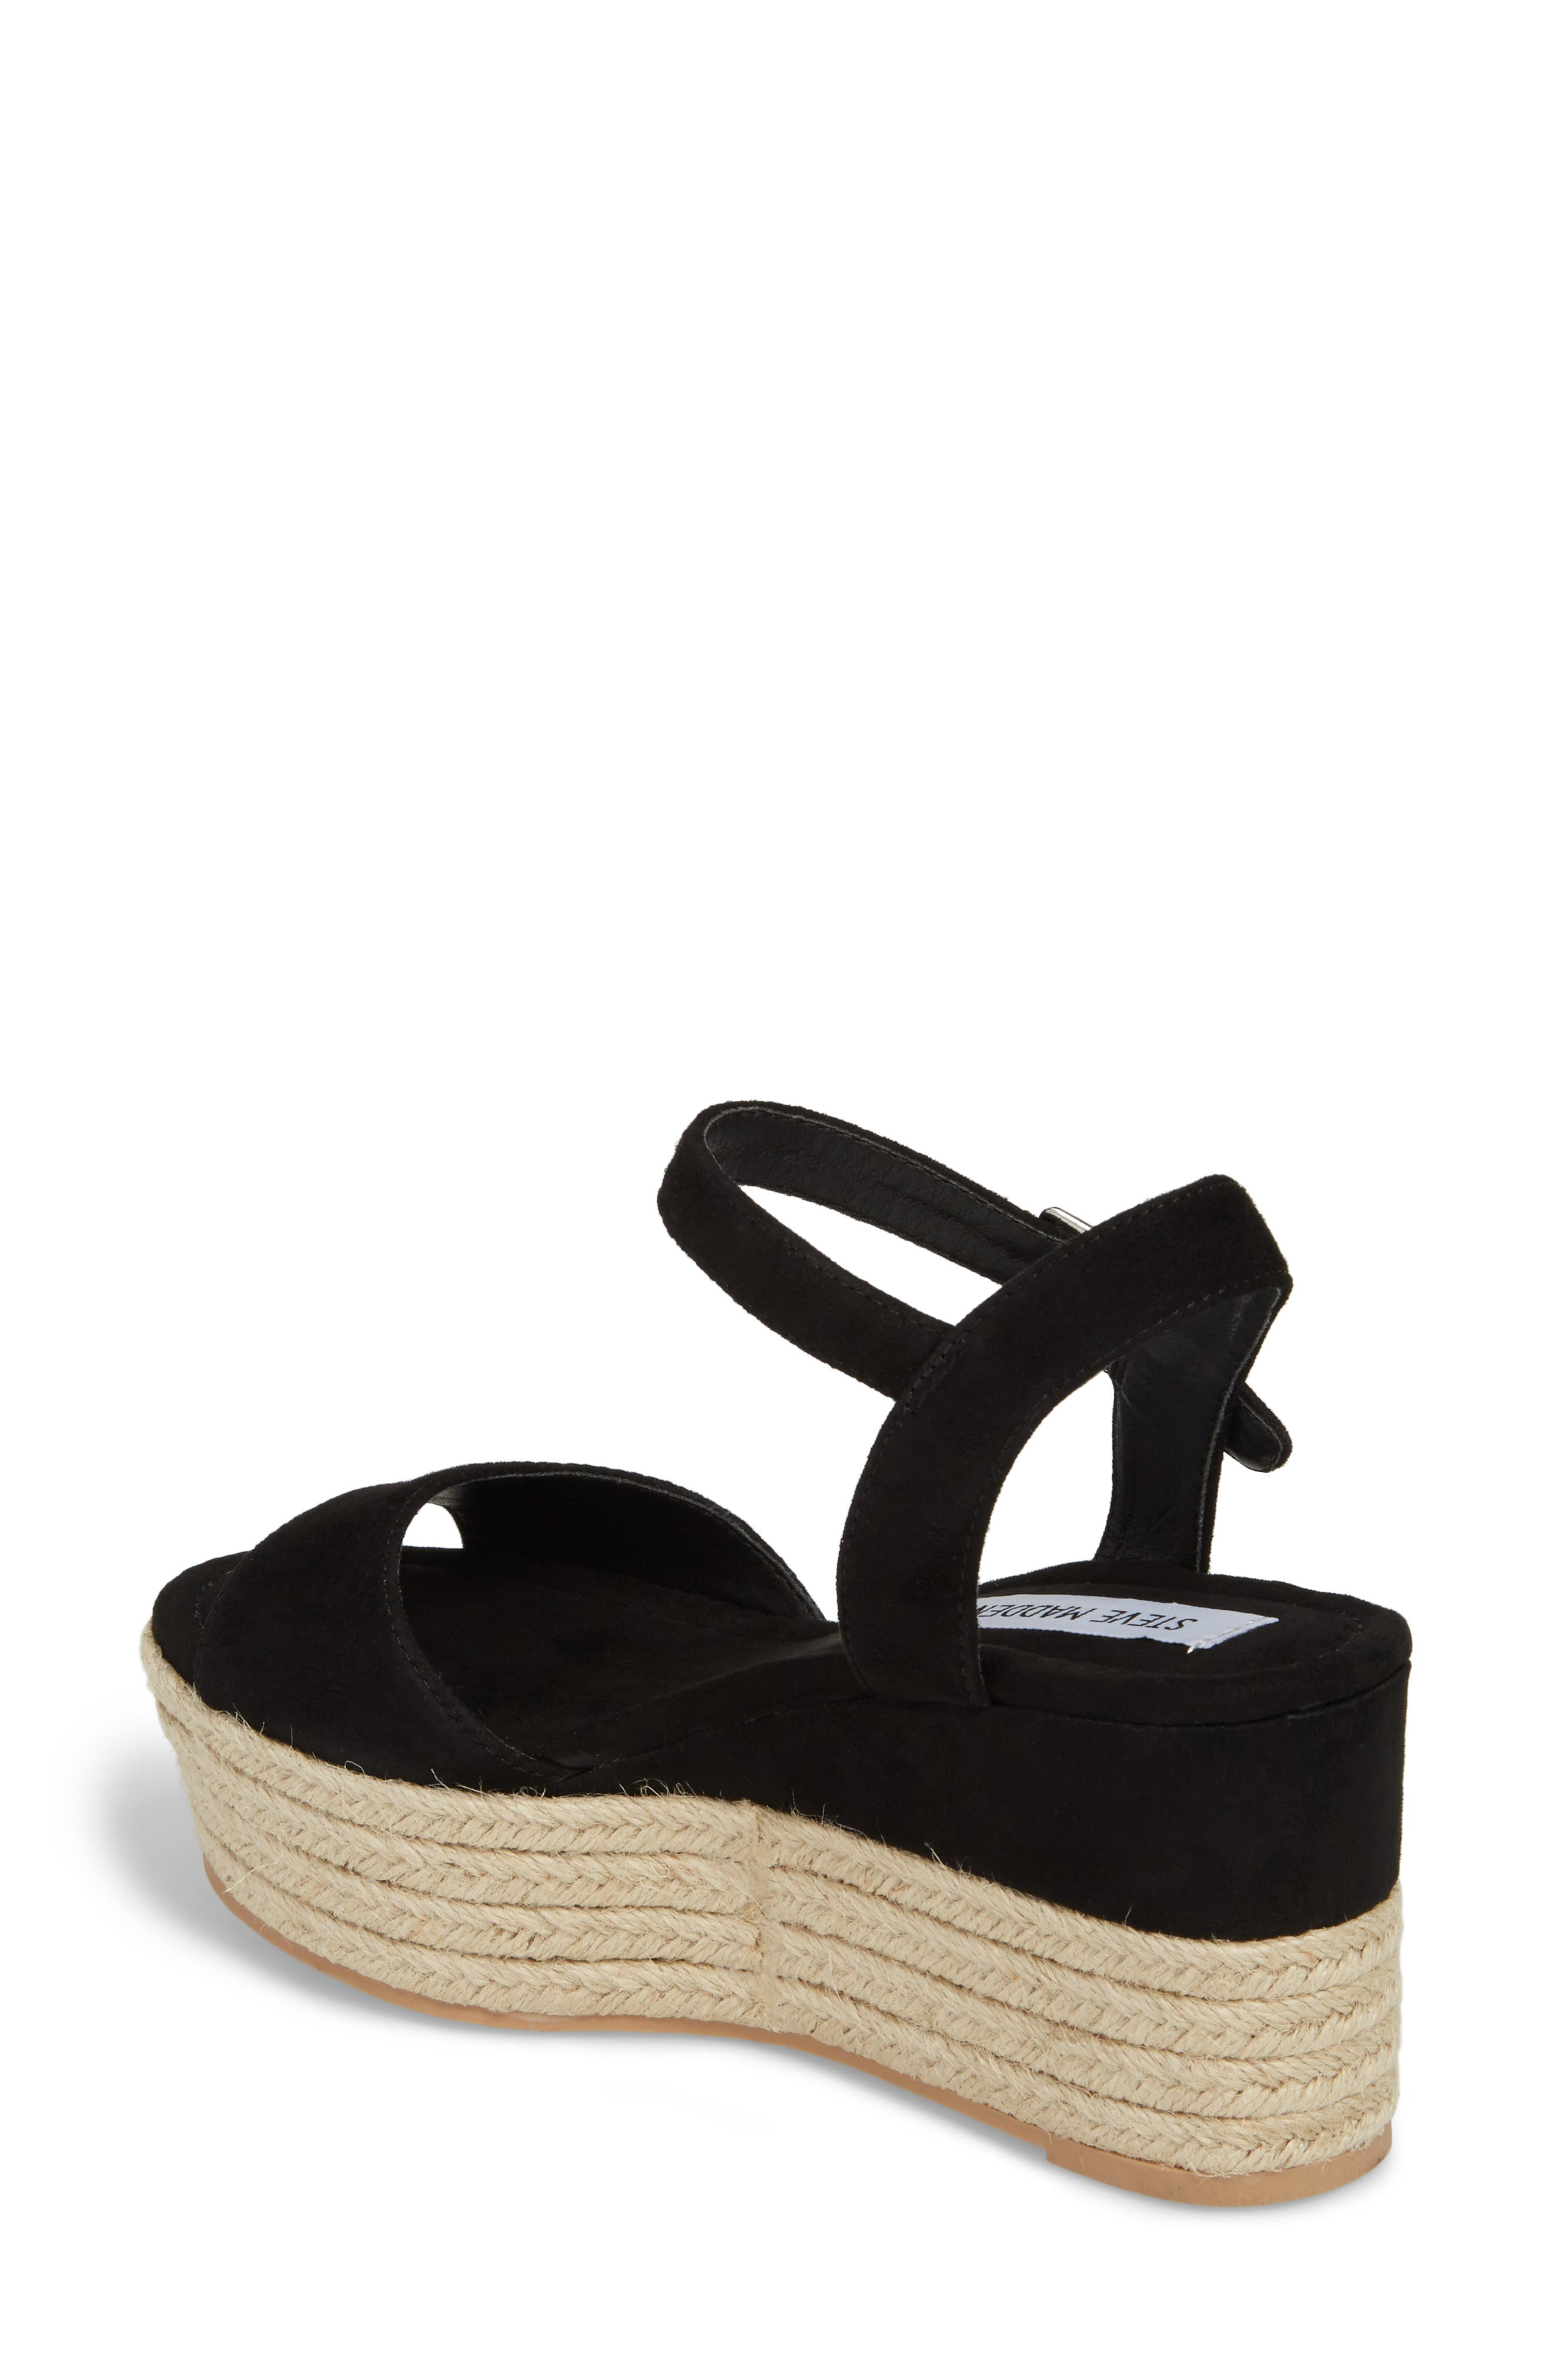 Kianna Espadrille Wedge Sandal,                             Alternate thumbnail 2, color,                             BLACK SUEDE